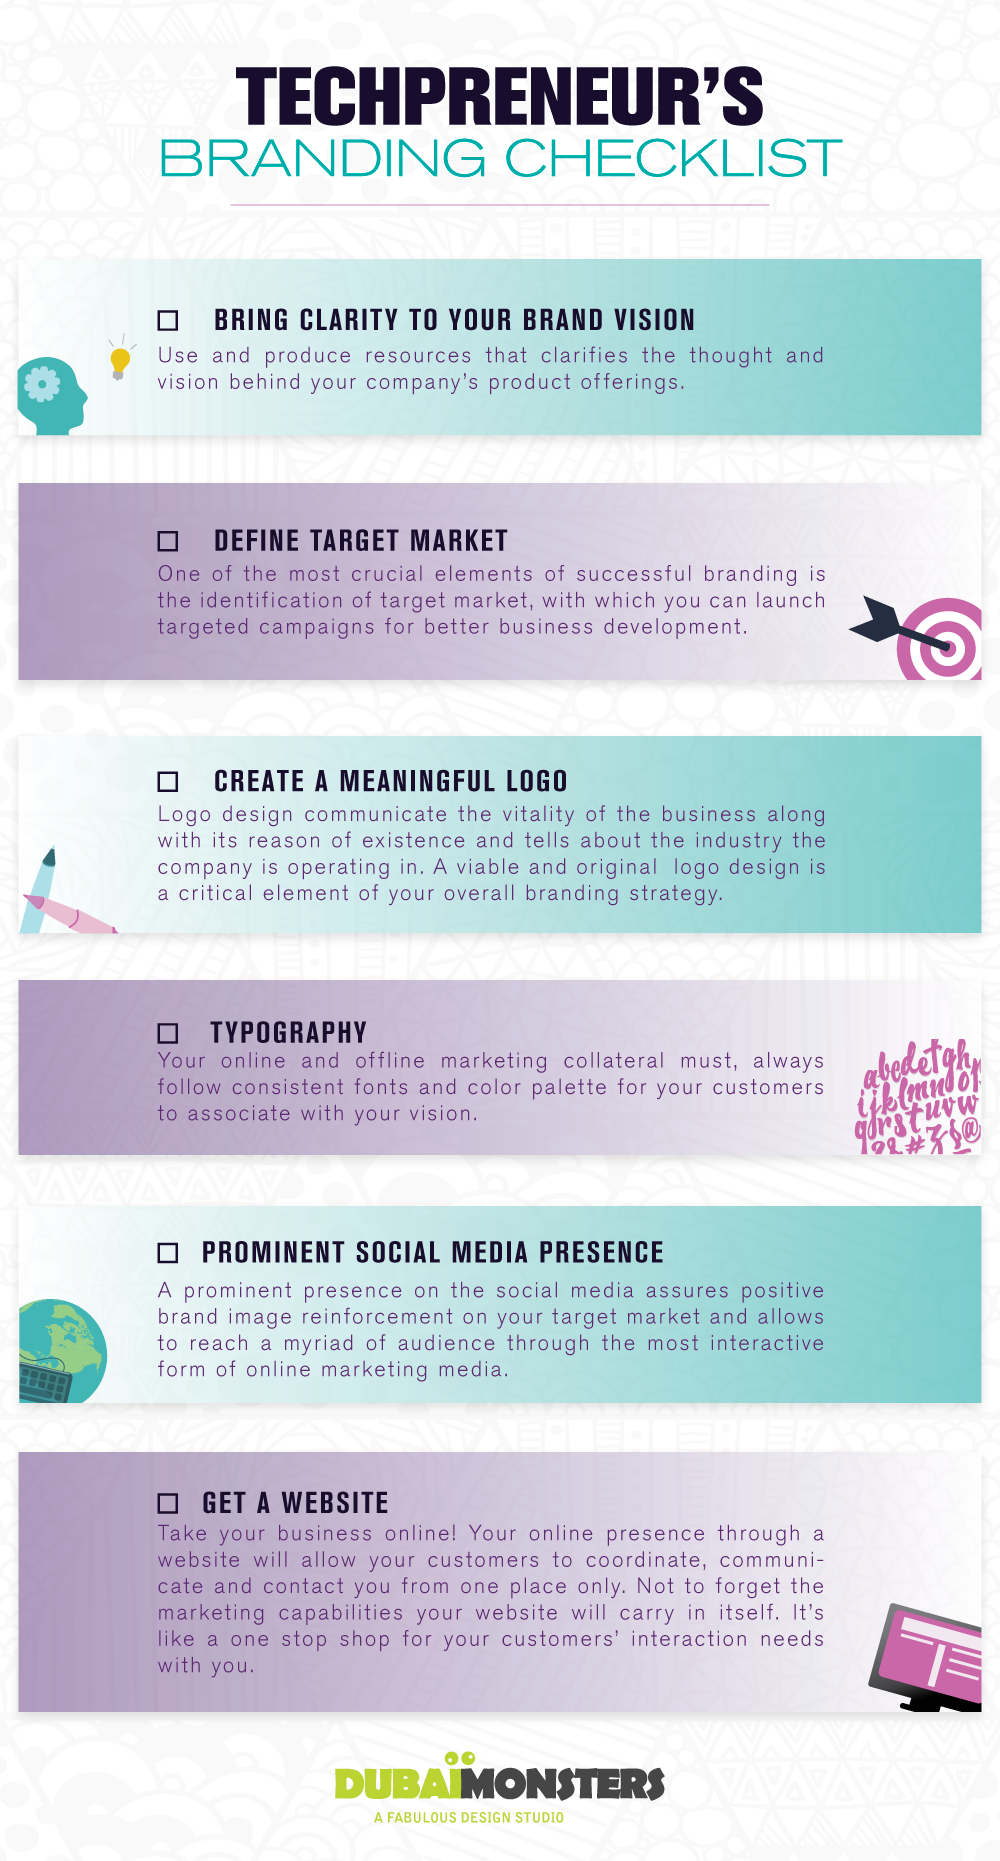 Techpreneur's Branding Checklist #Infographic